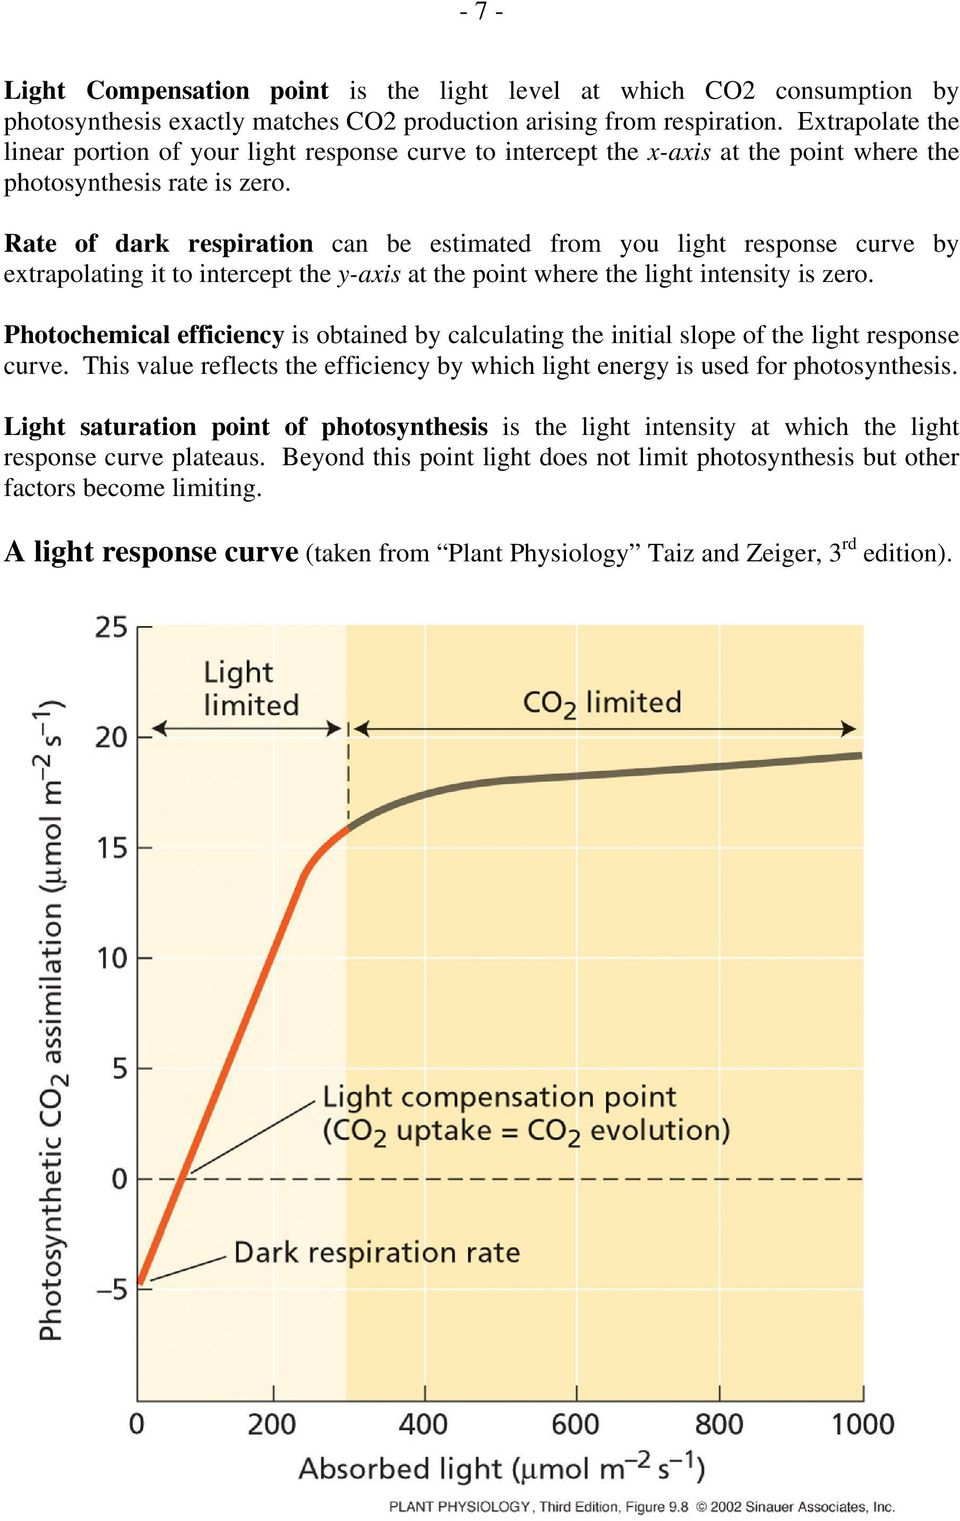 Rate of dark respiration can be estimated from you light response curve by extrapolating it to intercept the y-axis at the point where the light intensity is zero.